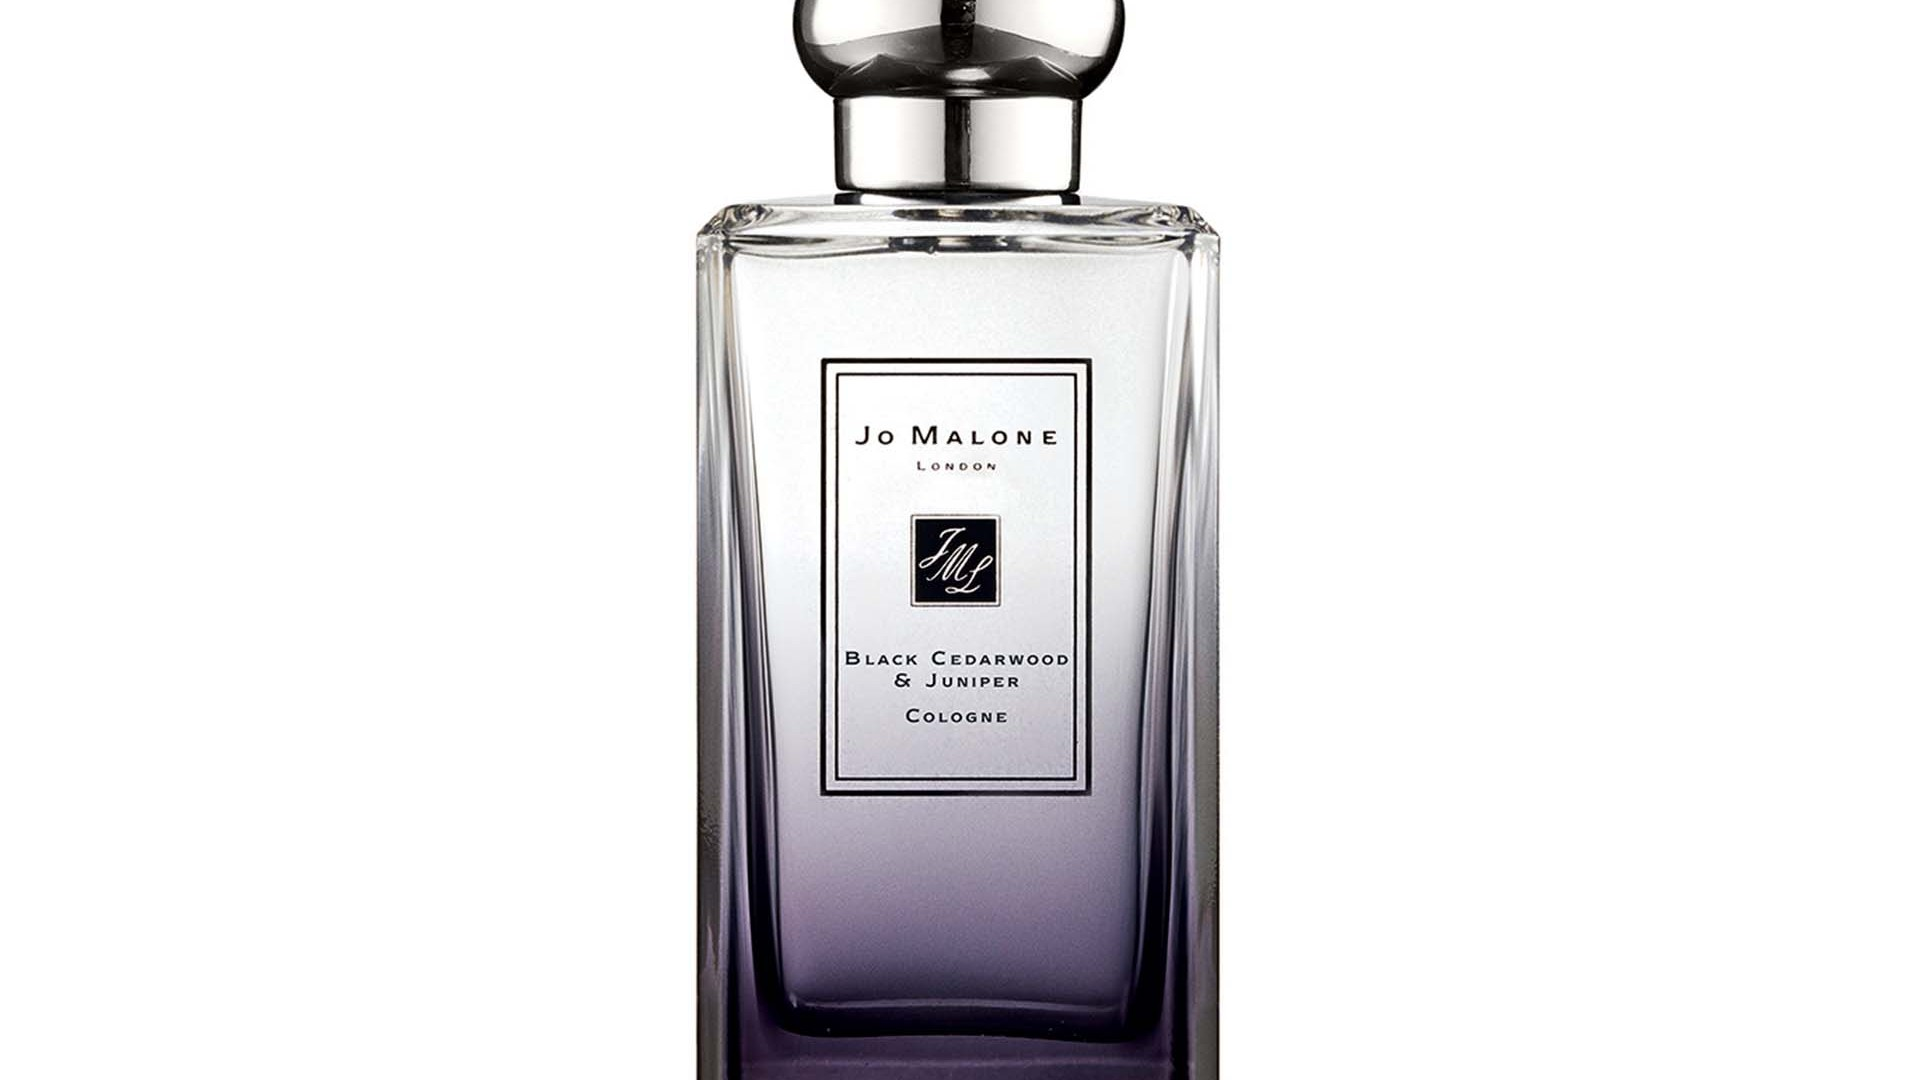 Black Cedarwood & Juniper Cologne by Jo Malone mens fragrance